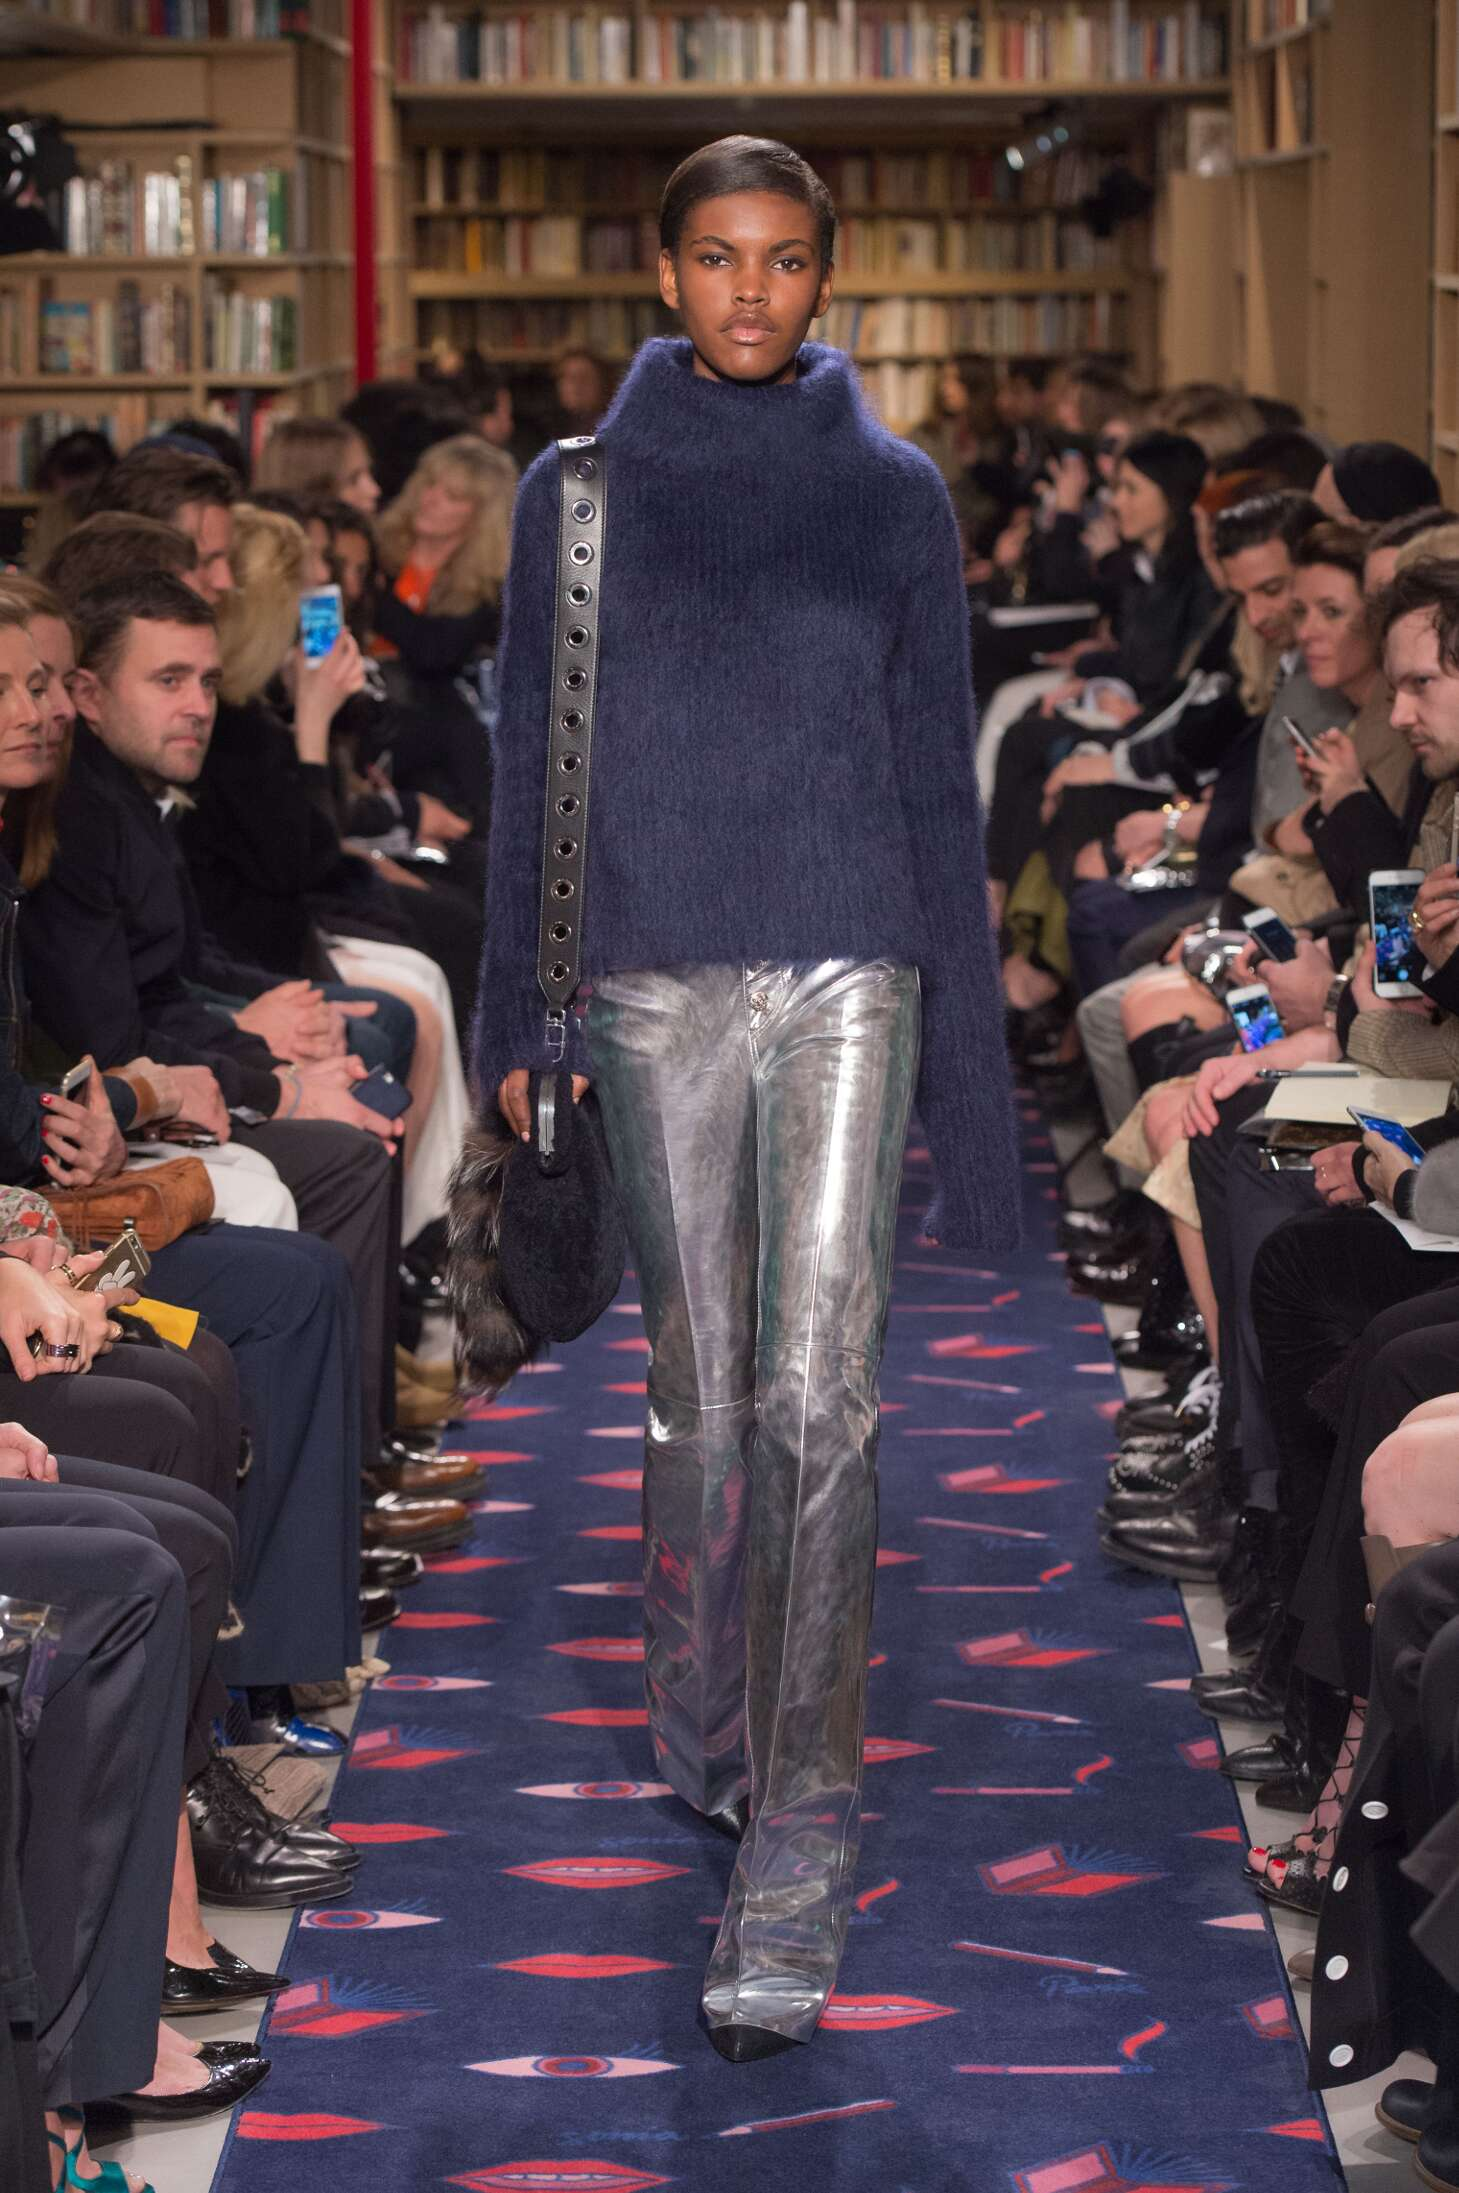 Sonia Rykiel Fall Winter 2015 16 Womenswear Collection Paris Fashion Week Fashion Show